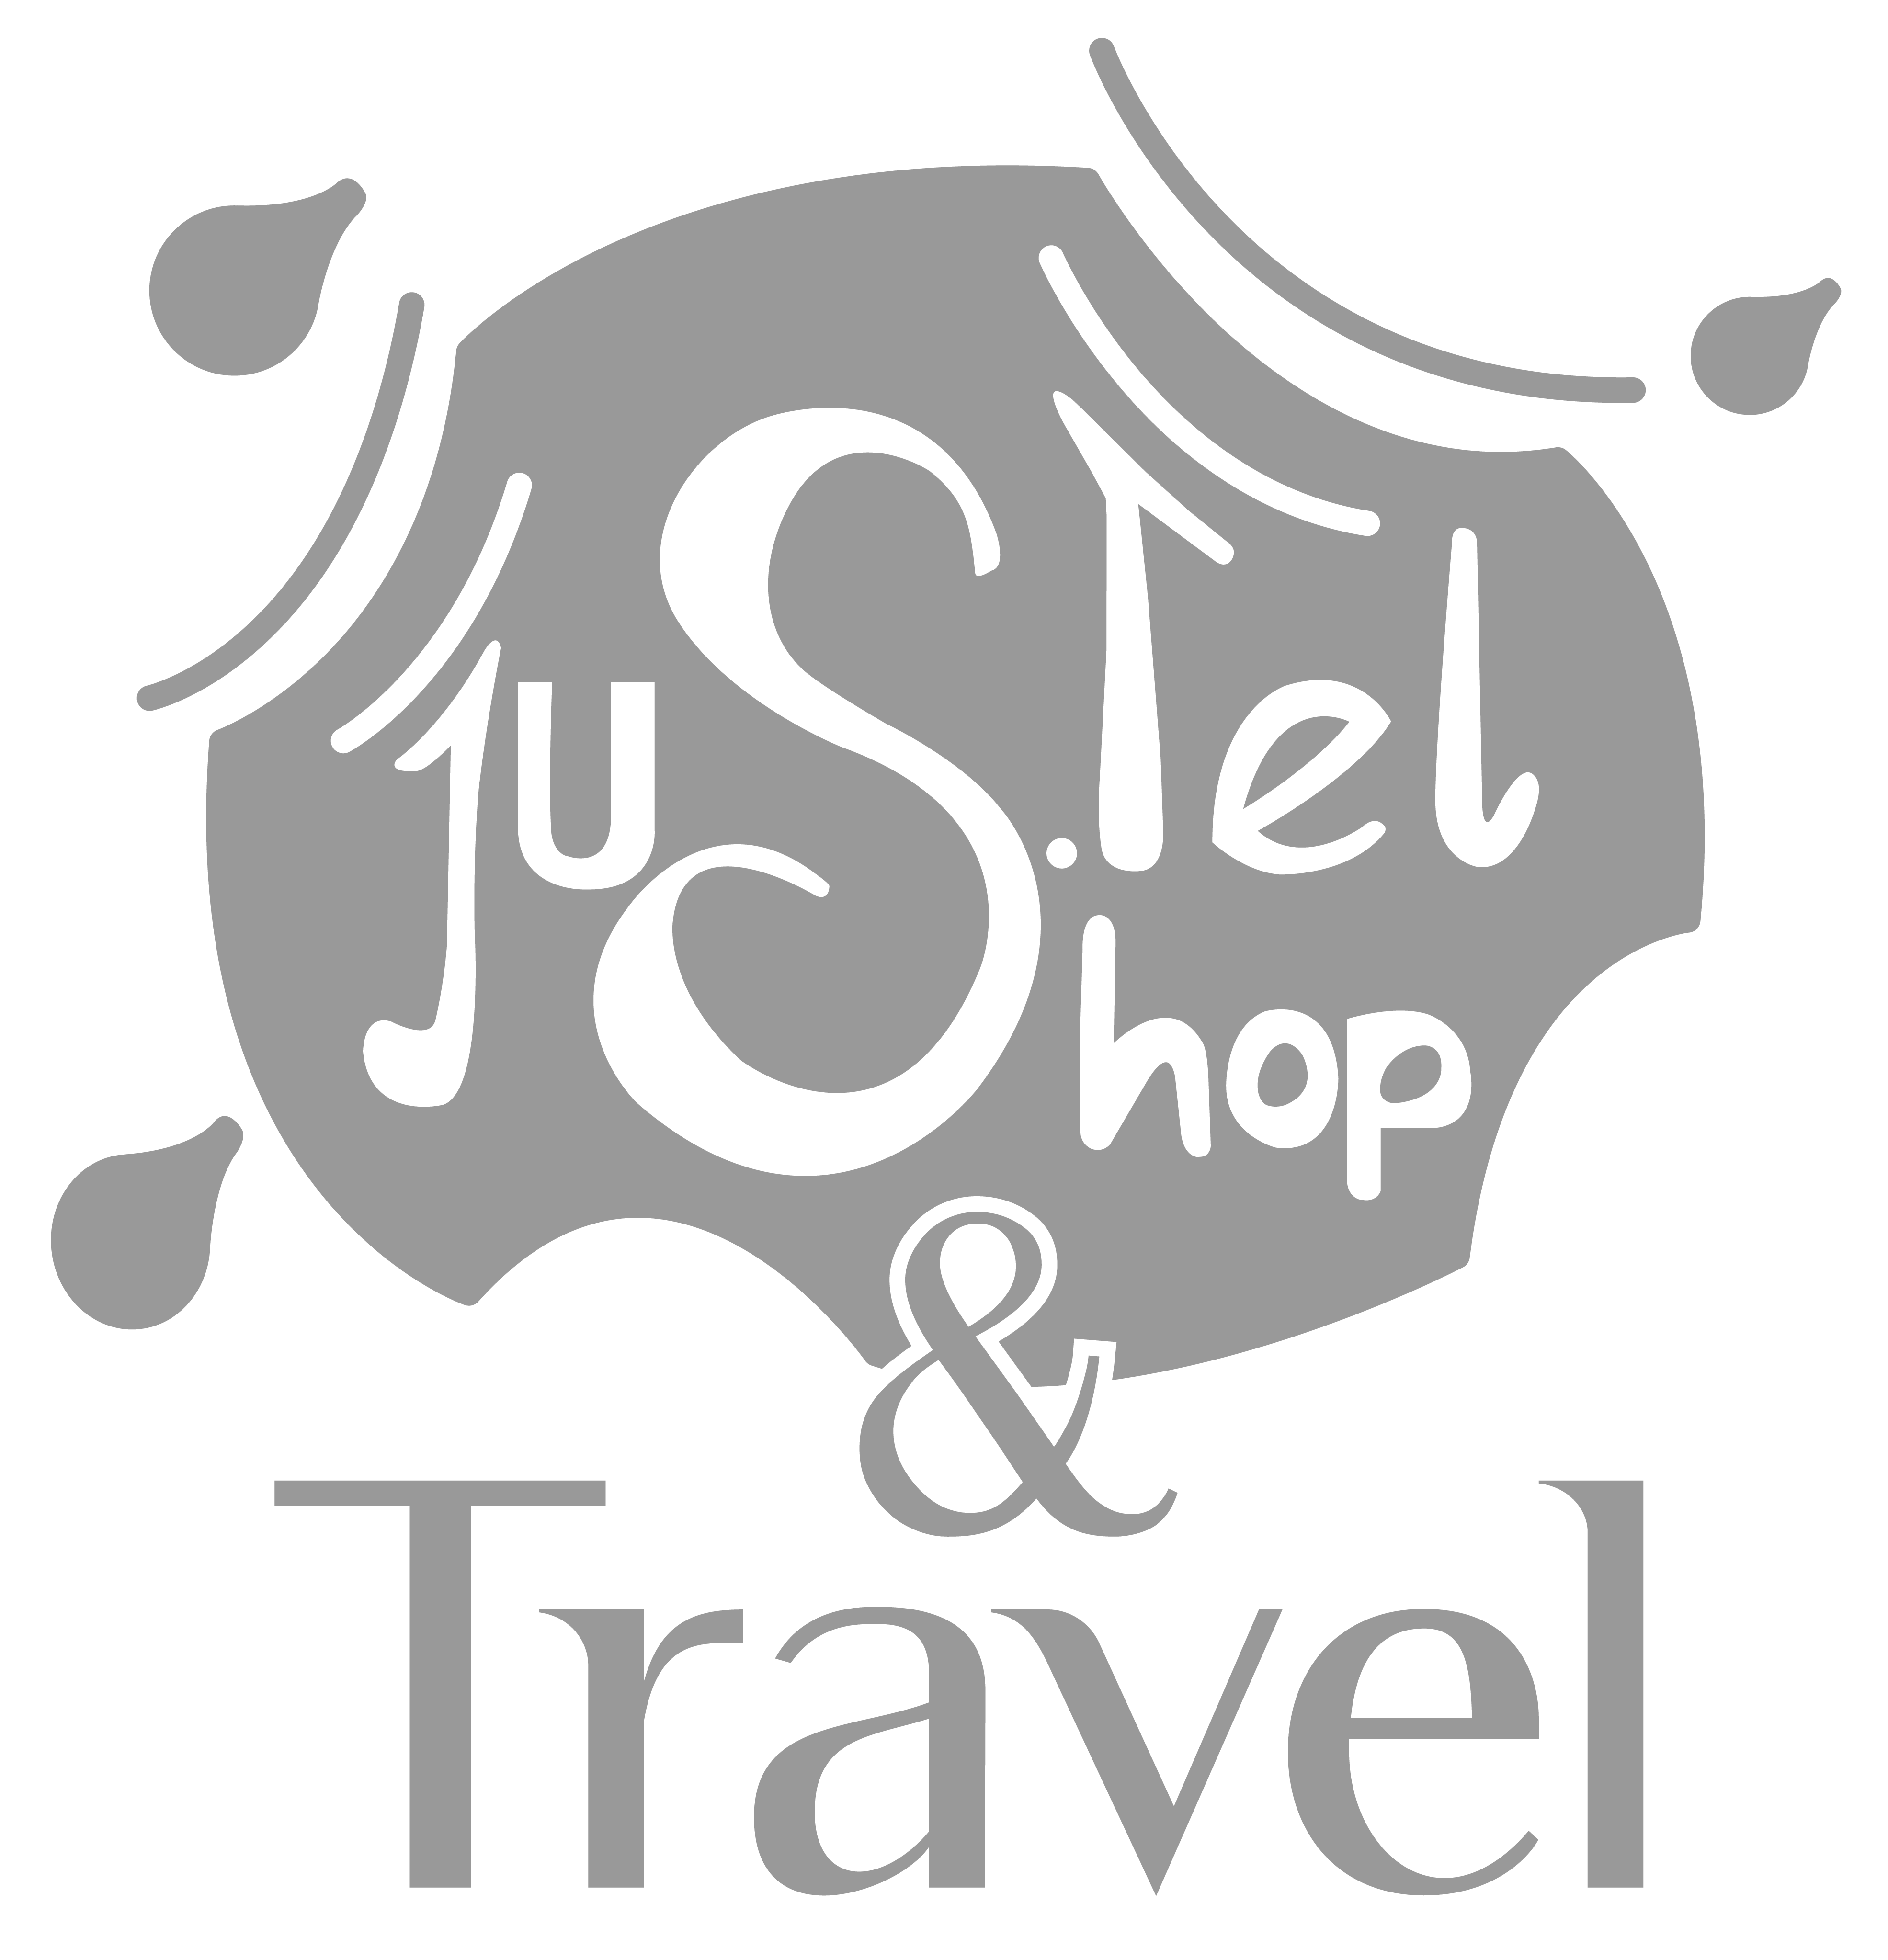 Justelshop and Travel